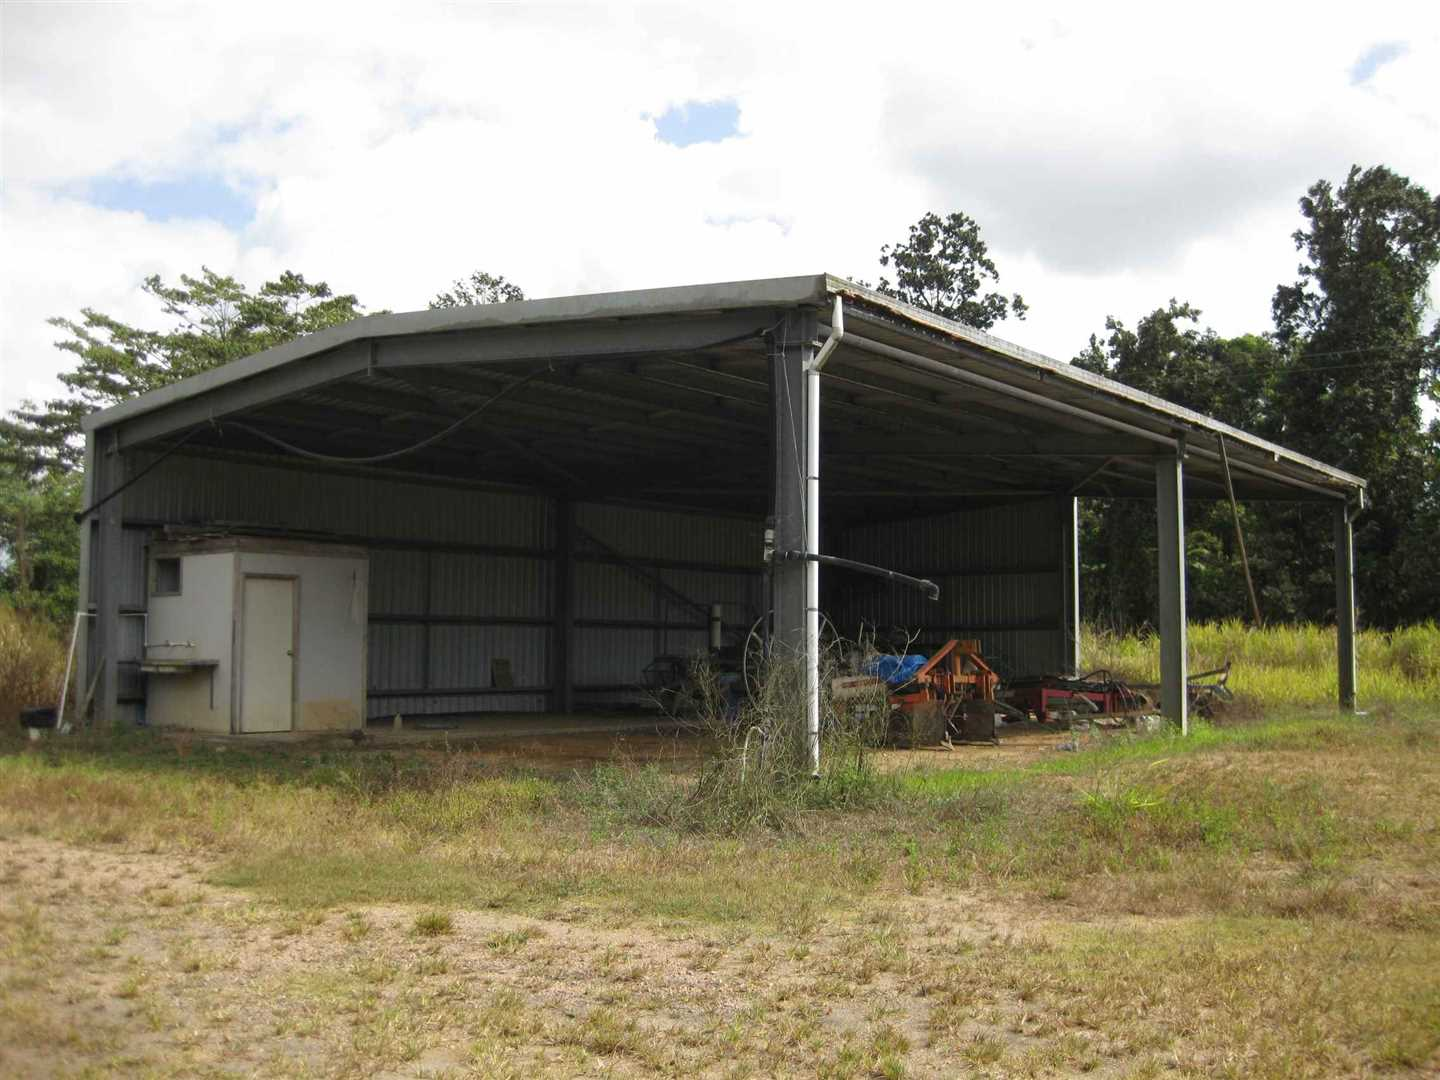 View of part of machinery shed with toilet